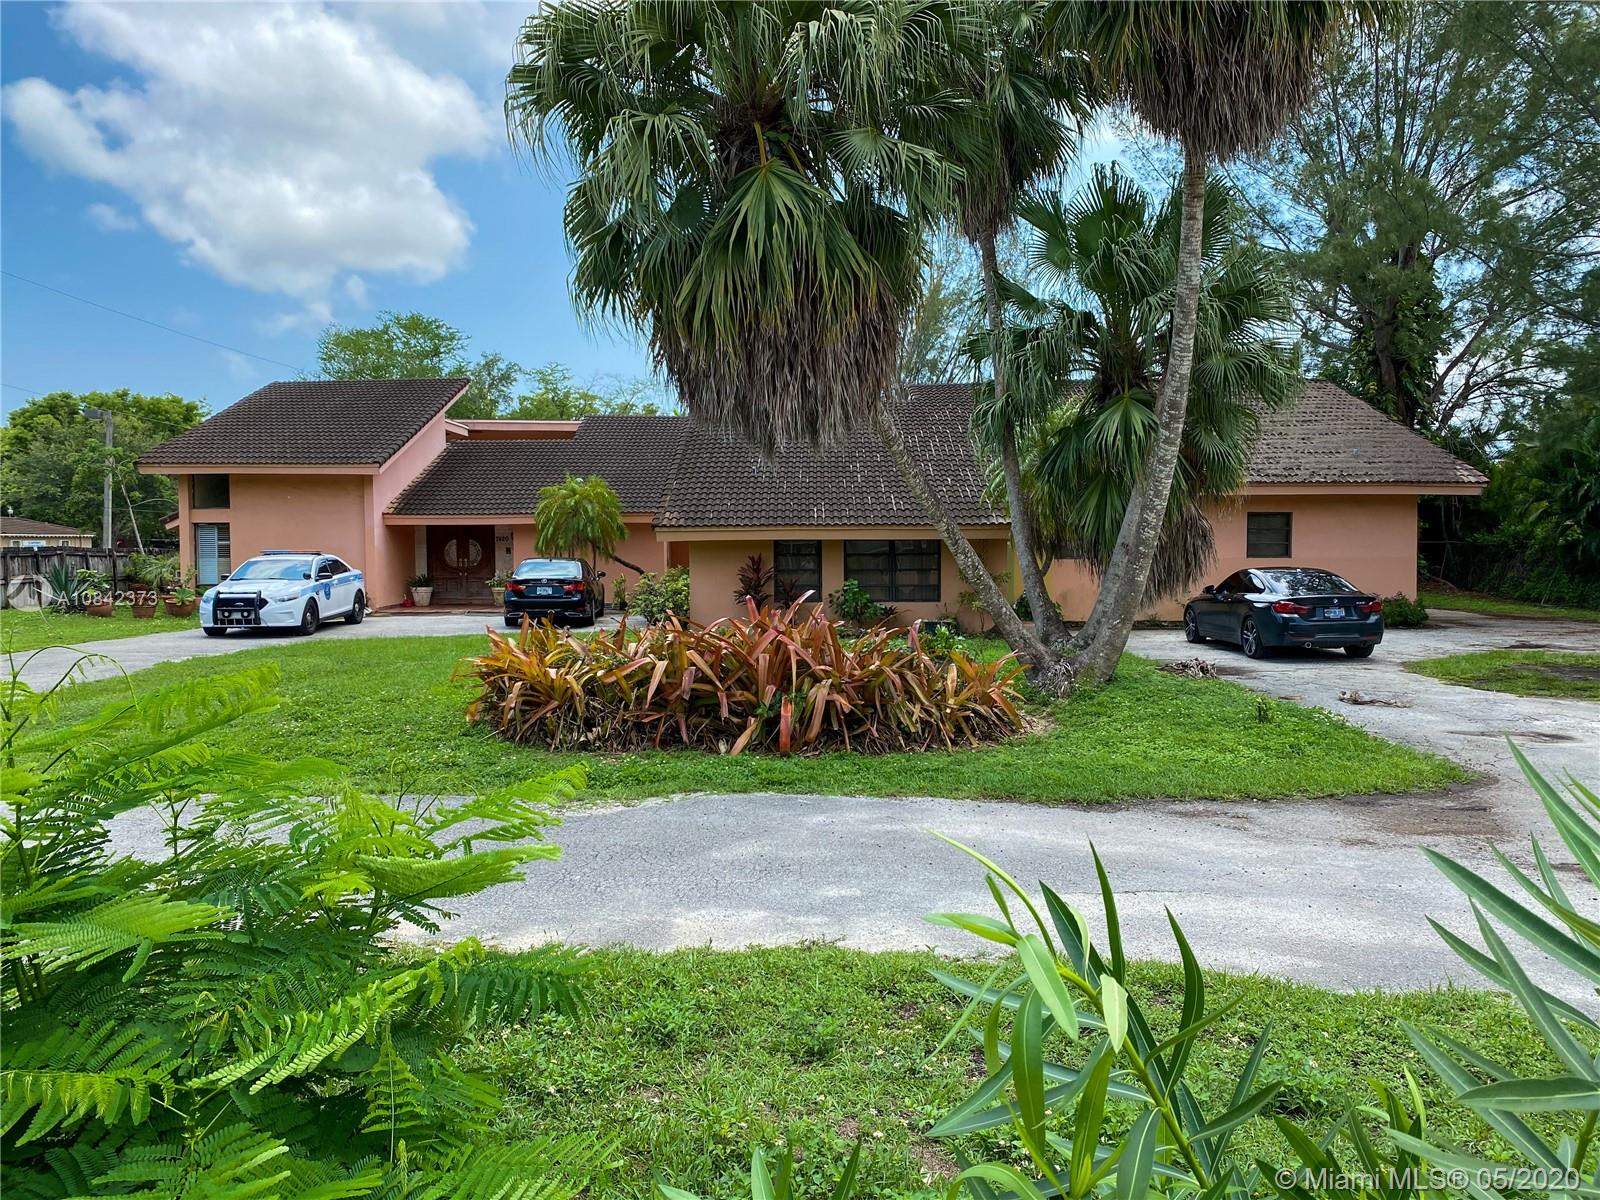 Details for 7420 72nd St, Miami, FL 33143